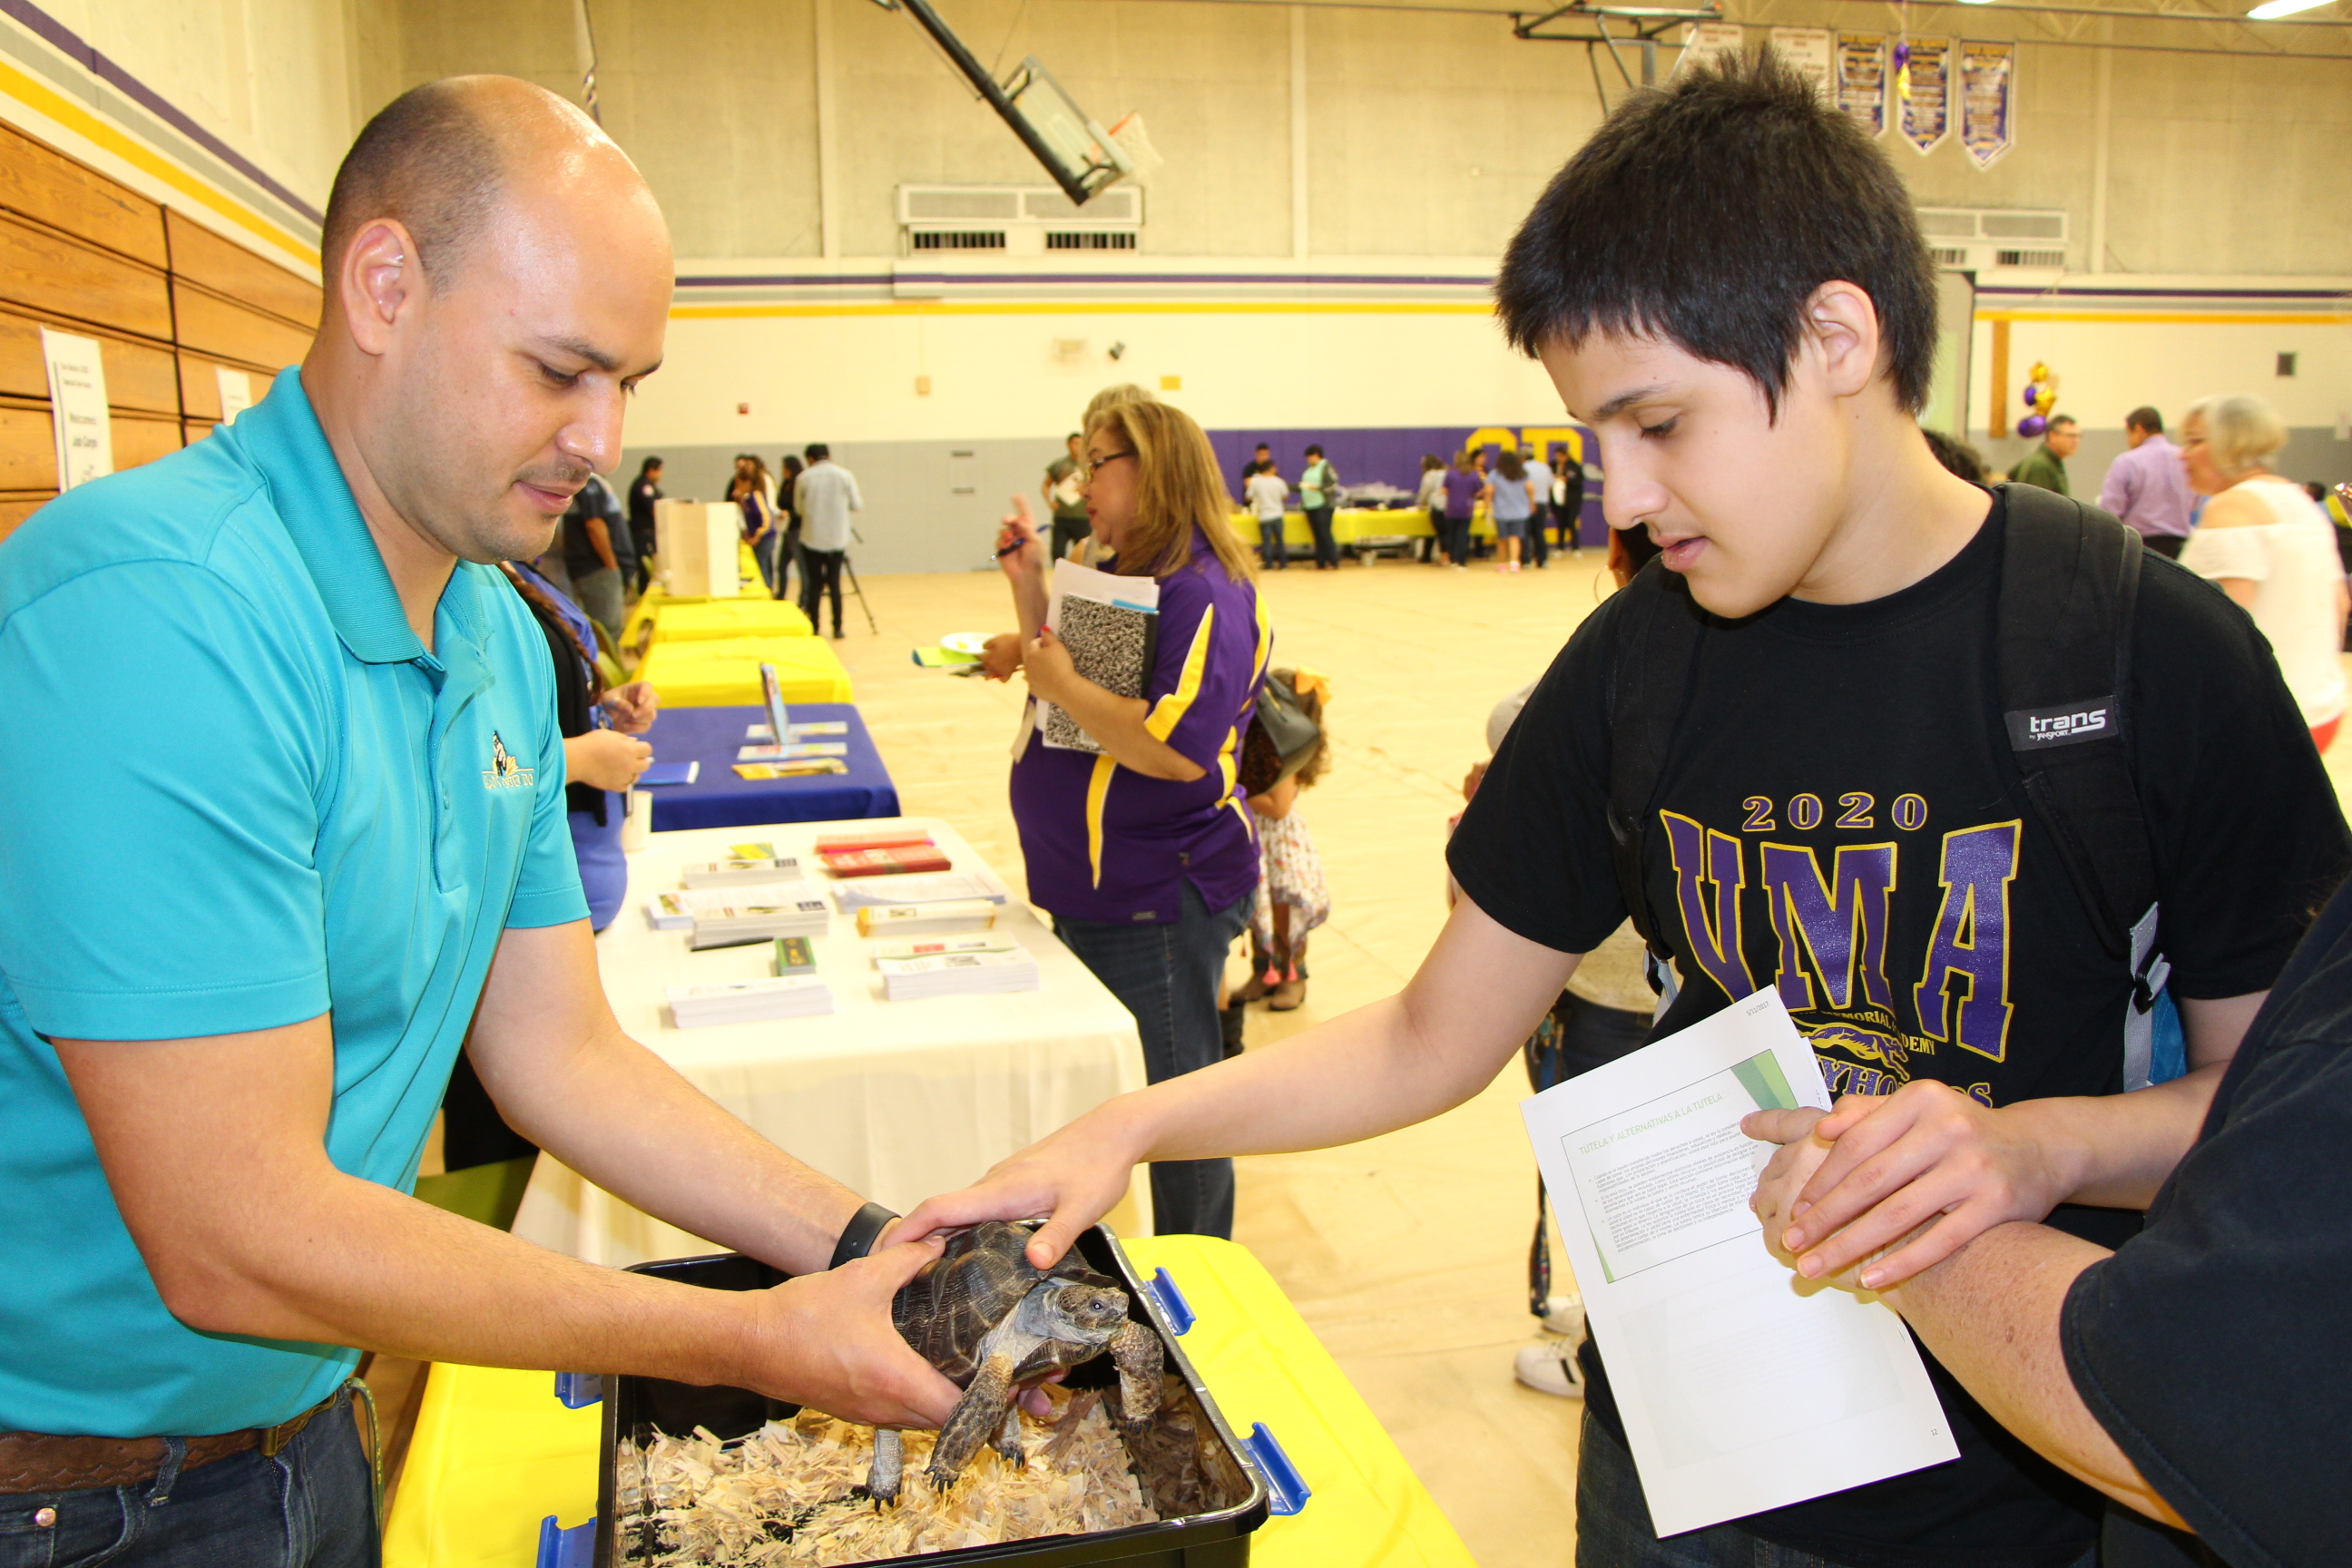 district helps students explore post